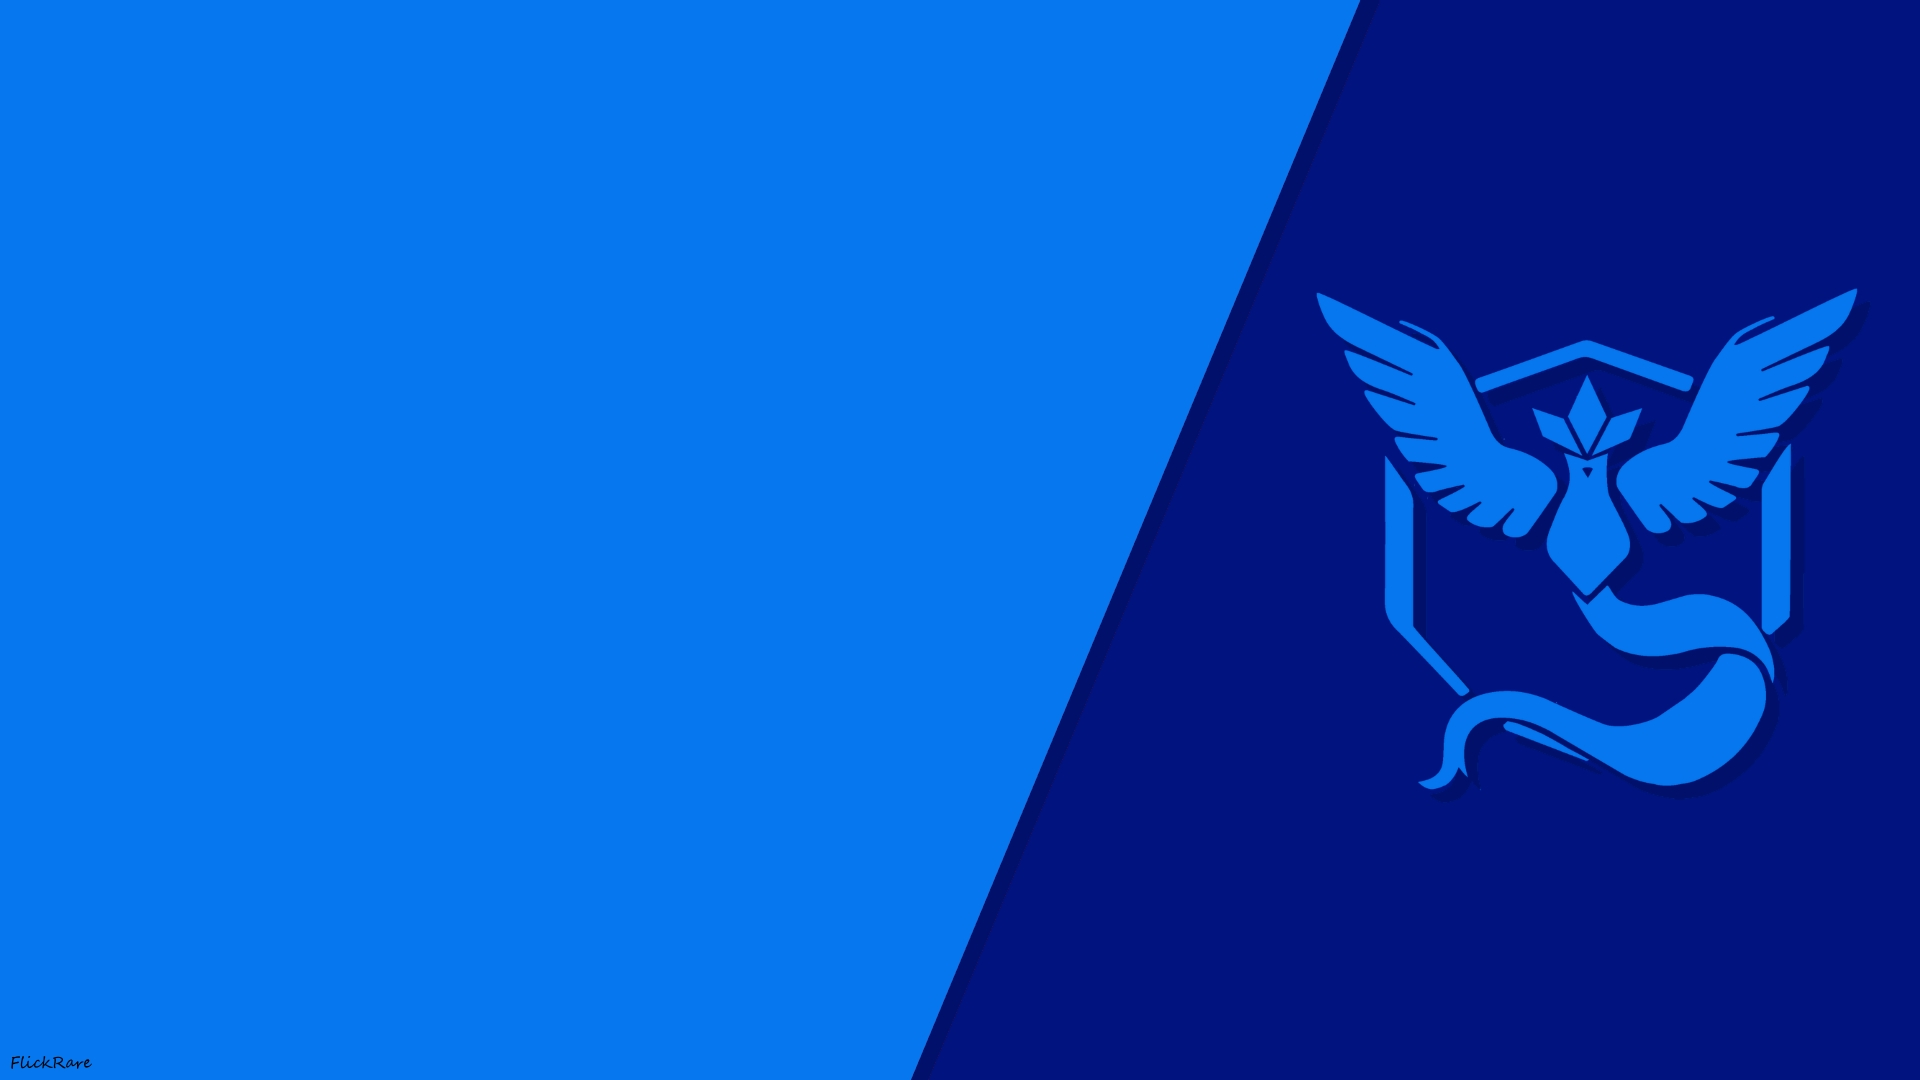 Pokemon go simple team mystic wallpaper by flickrare on for Going minimalist